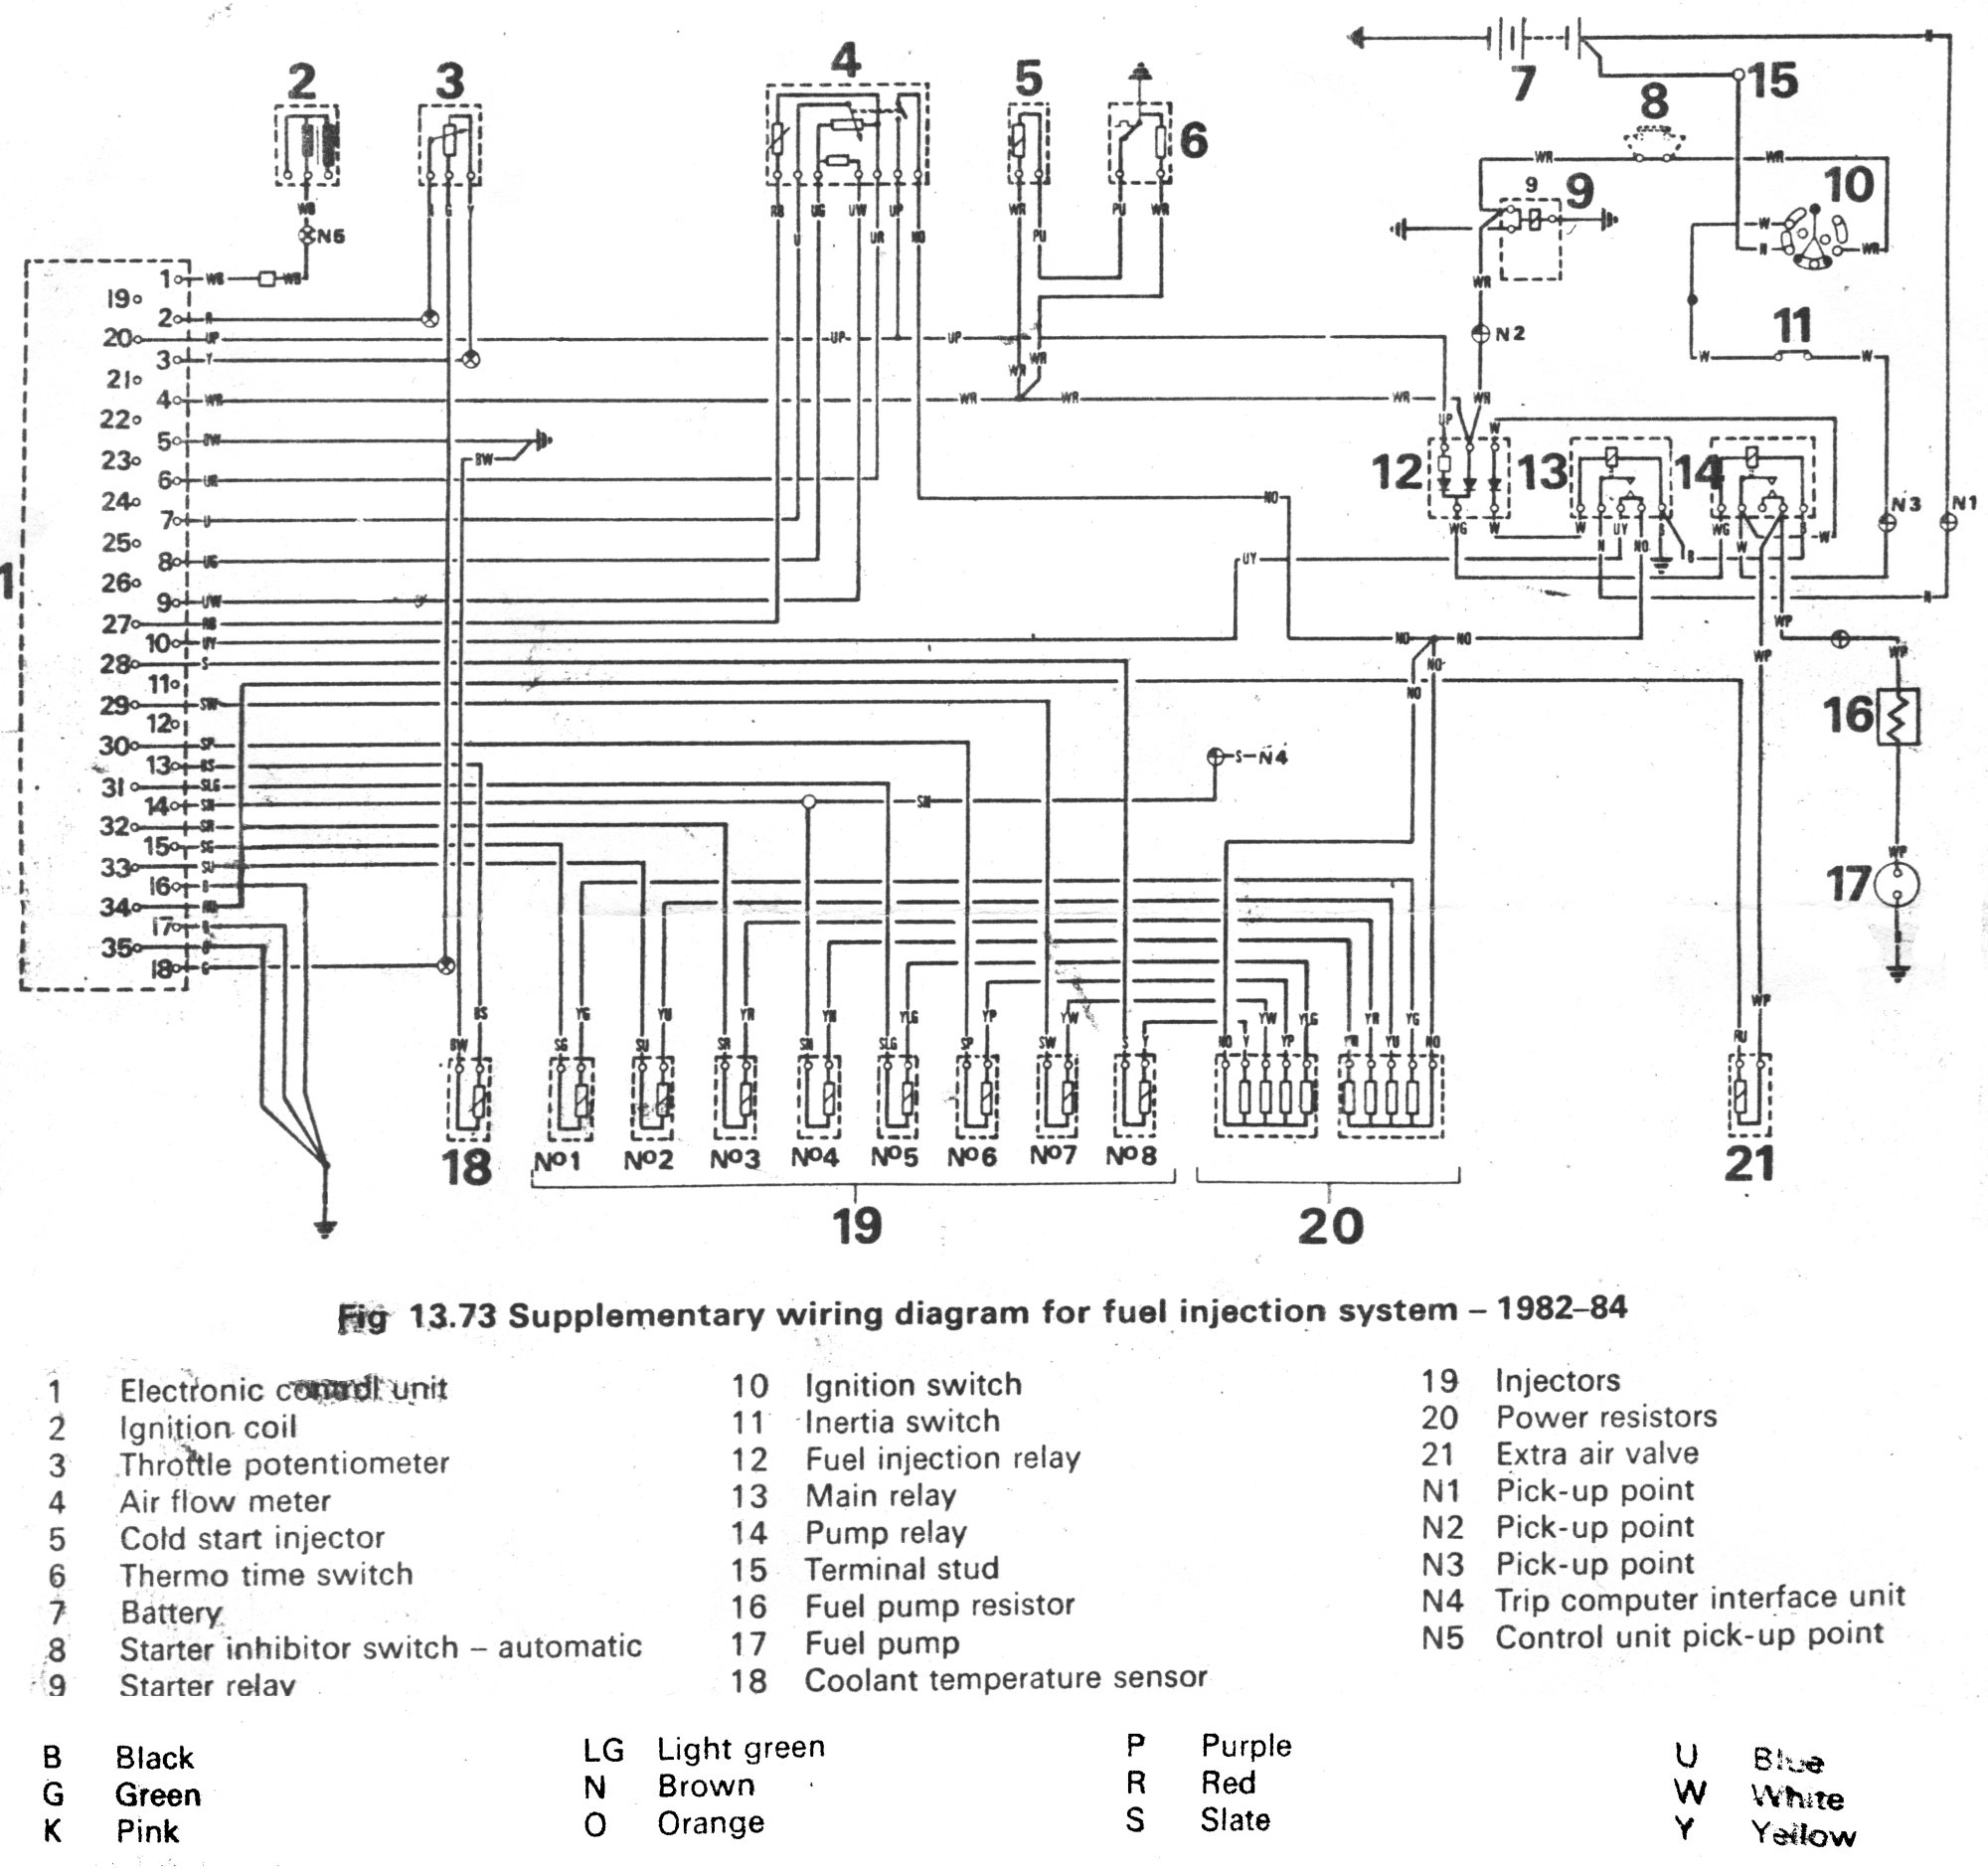 Land Rover Defender Trailer Wiring Diagram | Wiring Diagram - Land Rover Trailer Wiring Diagram